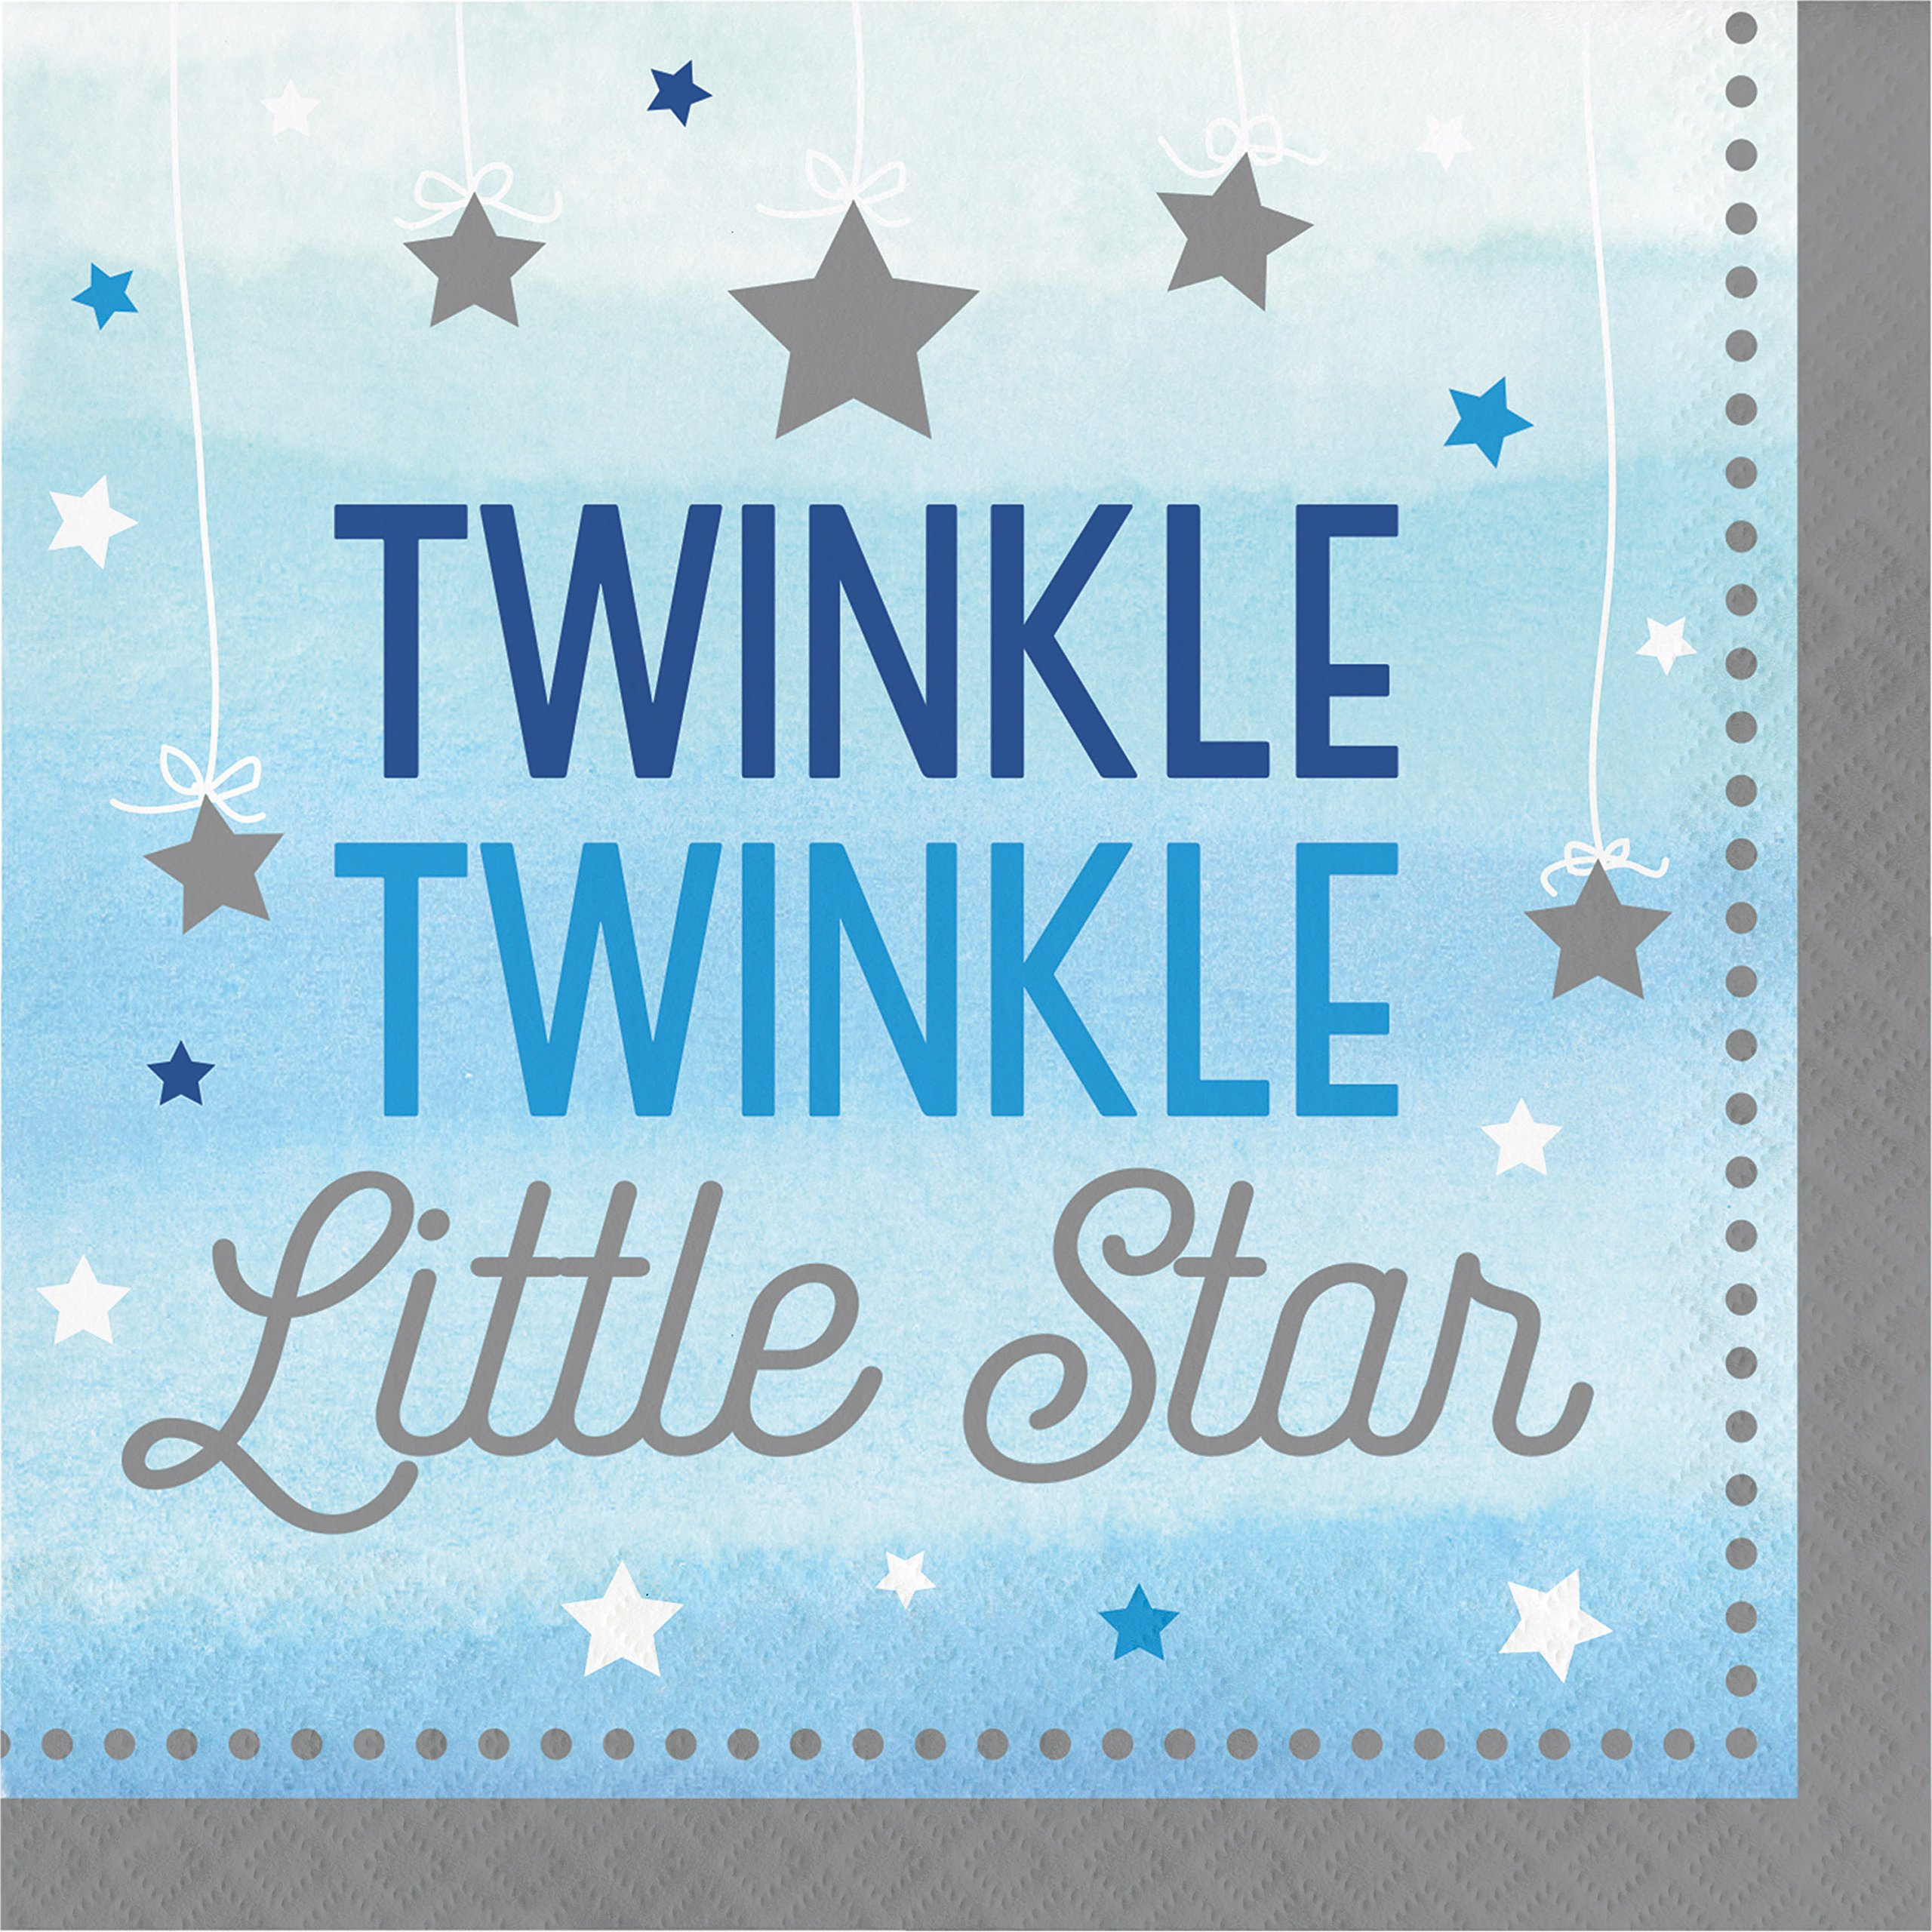 One Little Star Boy Napkins, 48 ct by Creative Converting